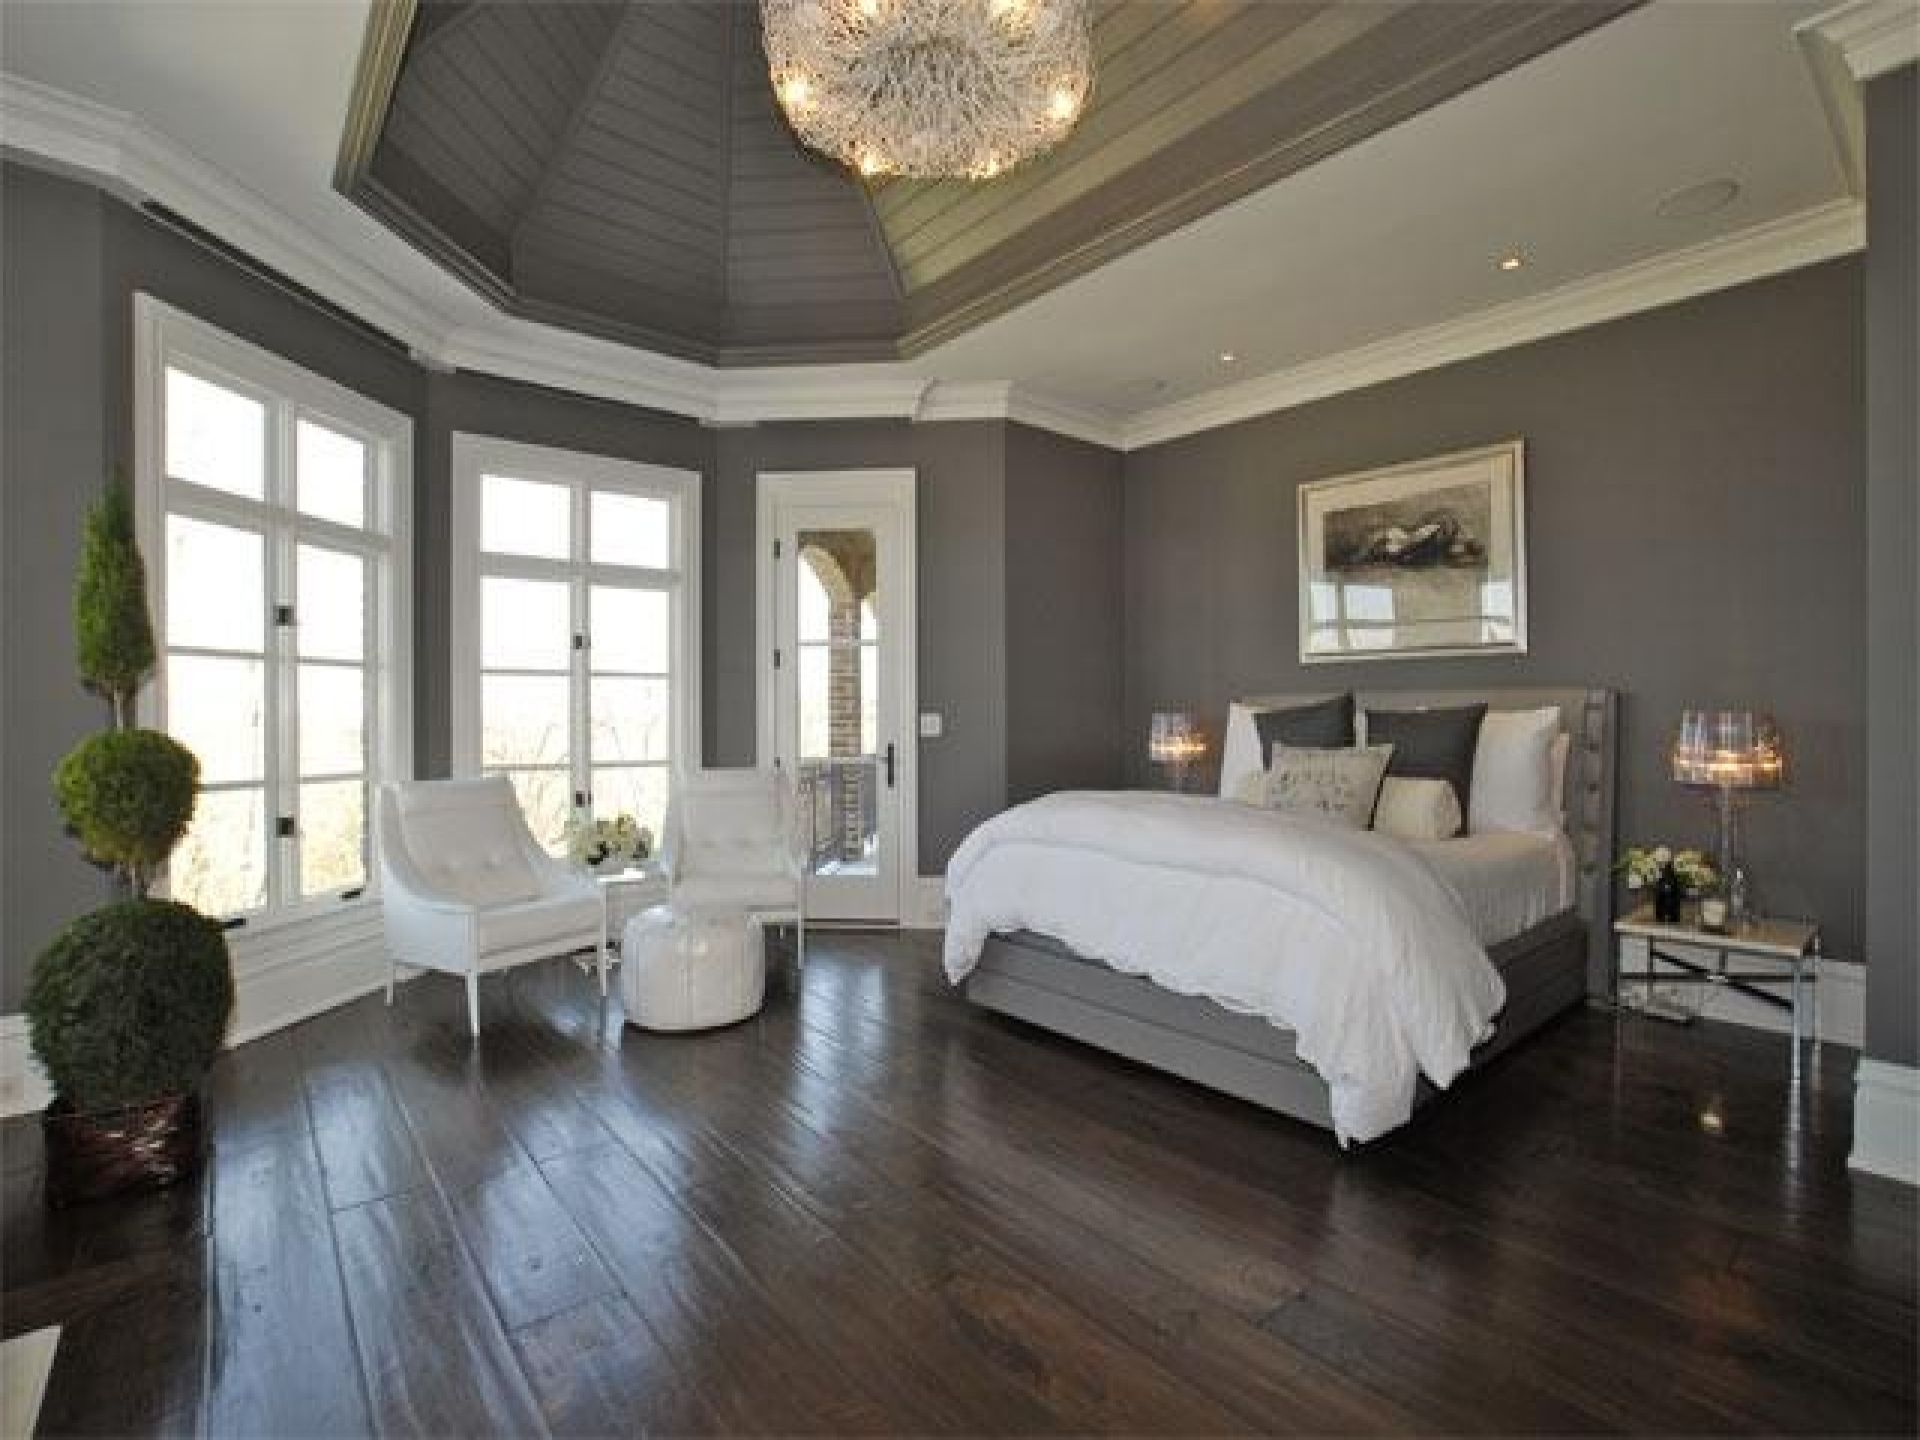 Black wall paint bedroom - Love The Gray Walls Ummm Yeh The Grey Walls Are Nice But Damn Look At That Ceiling I Love Love Super Love This Room Who Says U Can T Put Grey In A